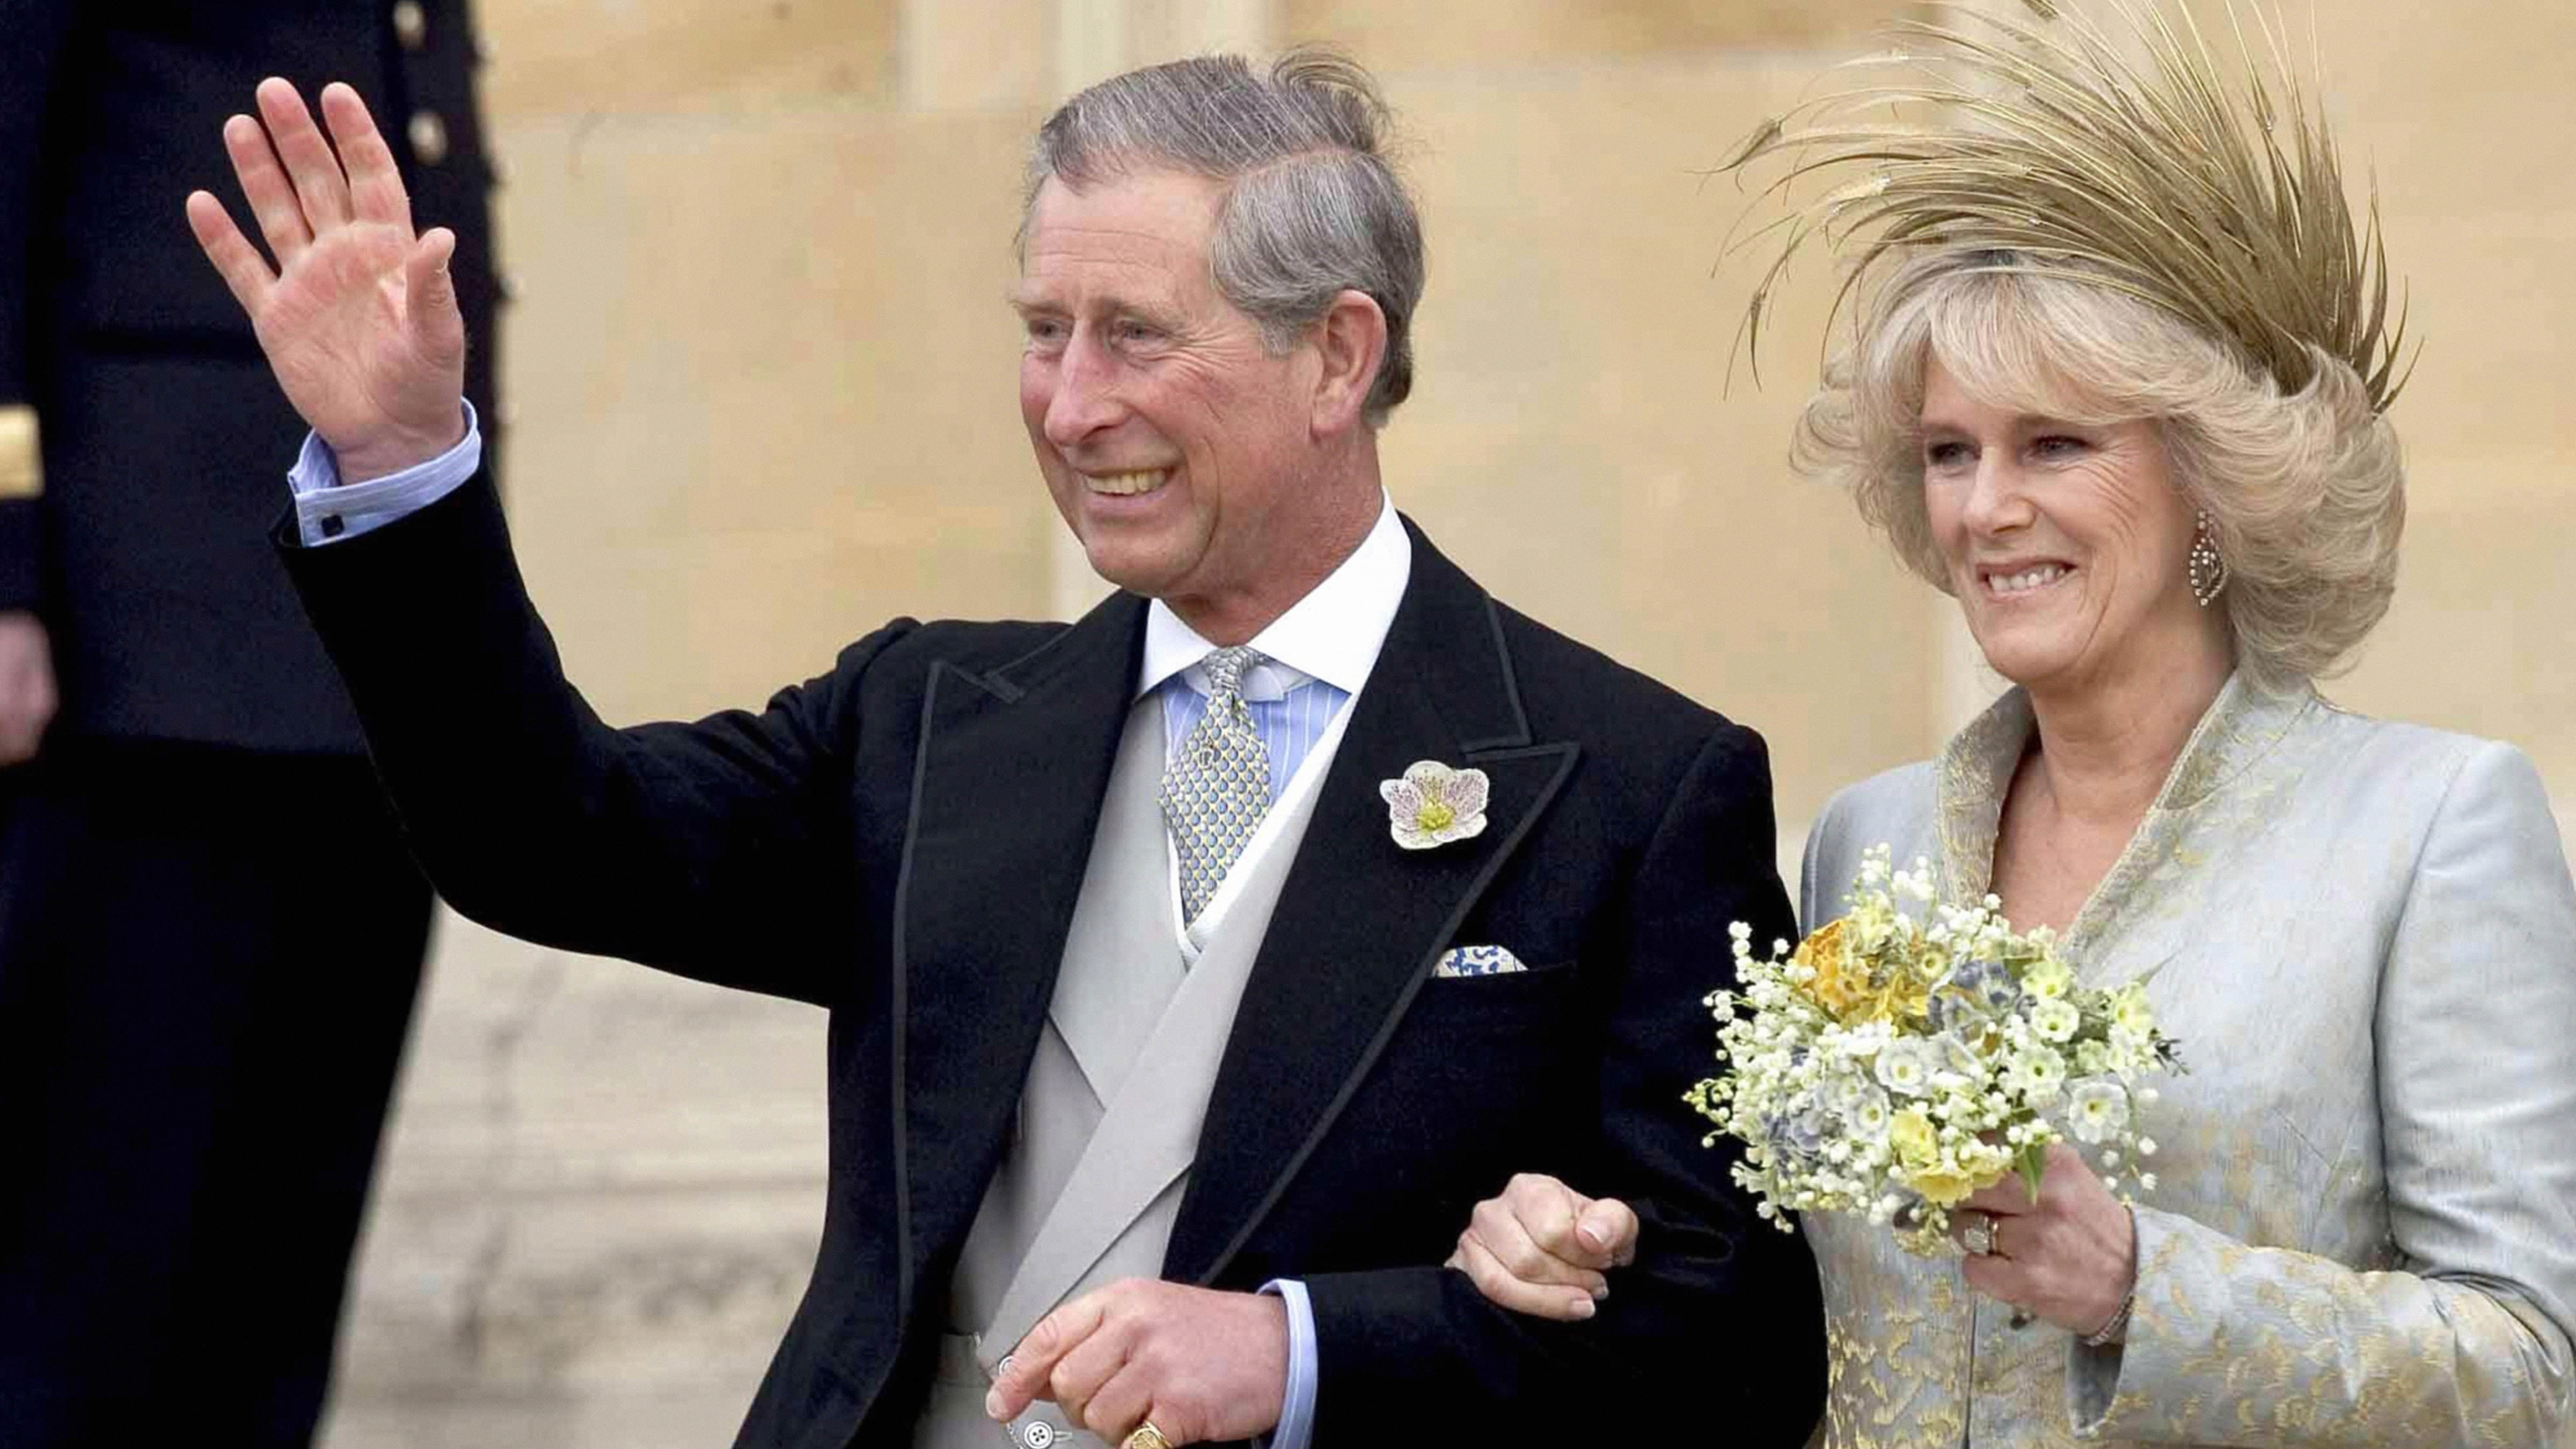 Camilla Parker Bowles Pulled a 'Mean Girls' Move on Princess Diana Before Her Royal Wedding